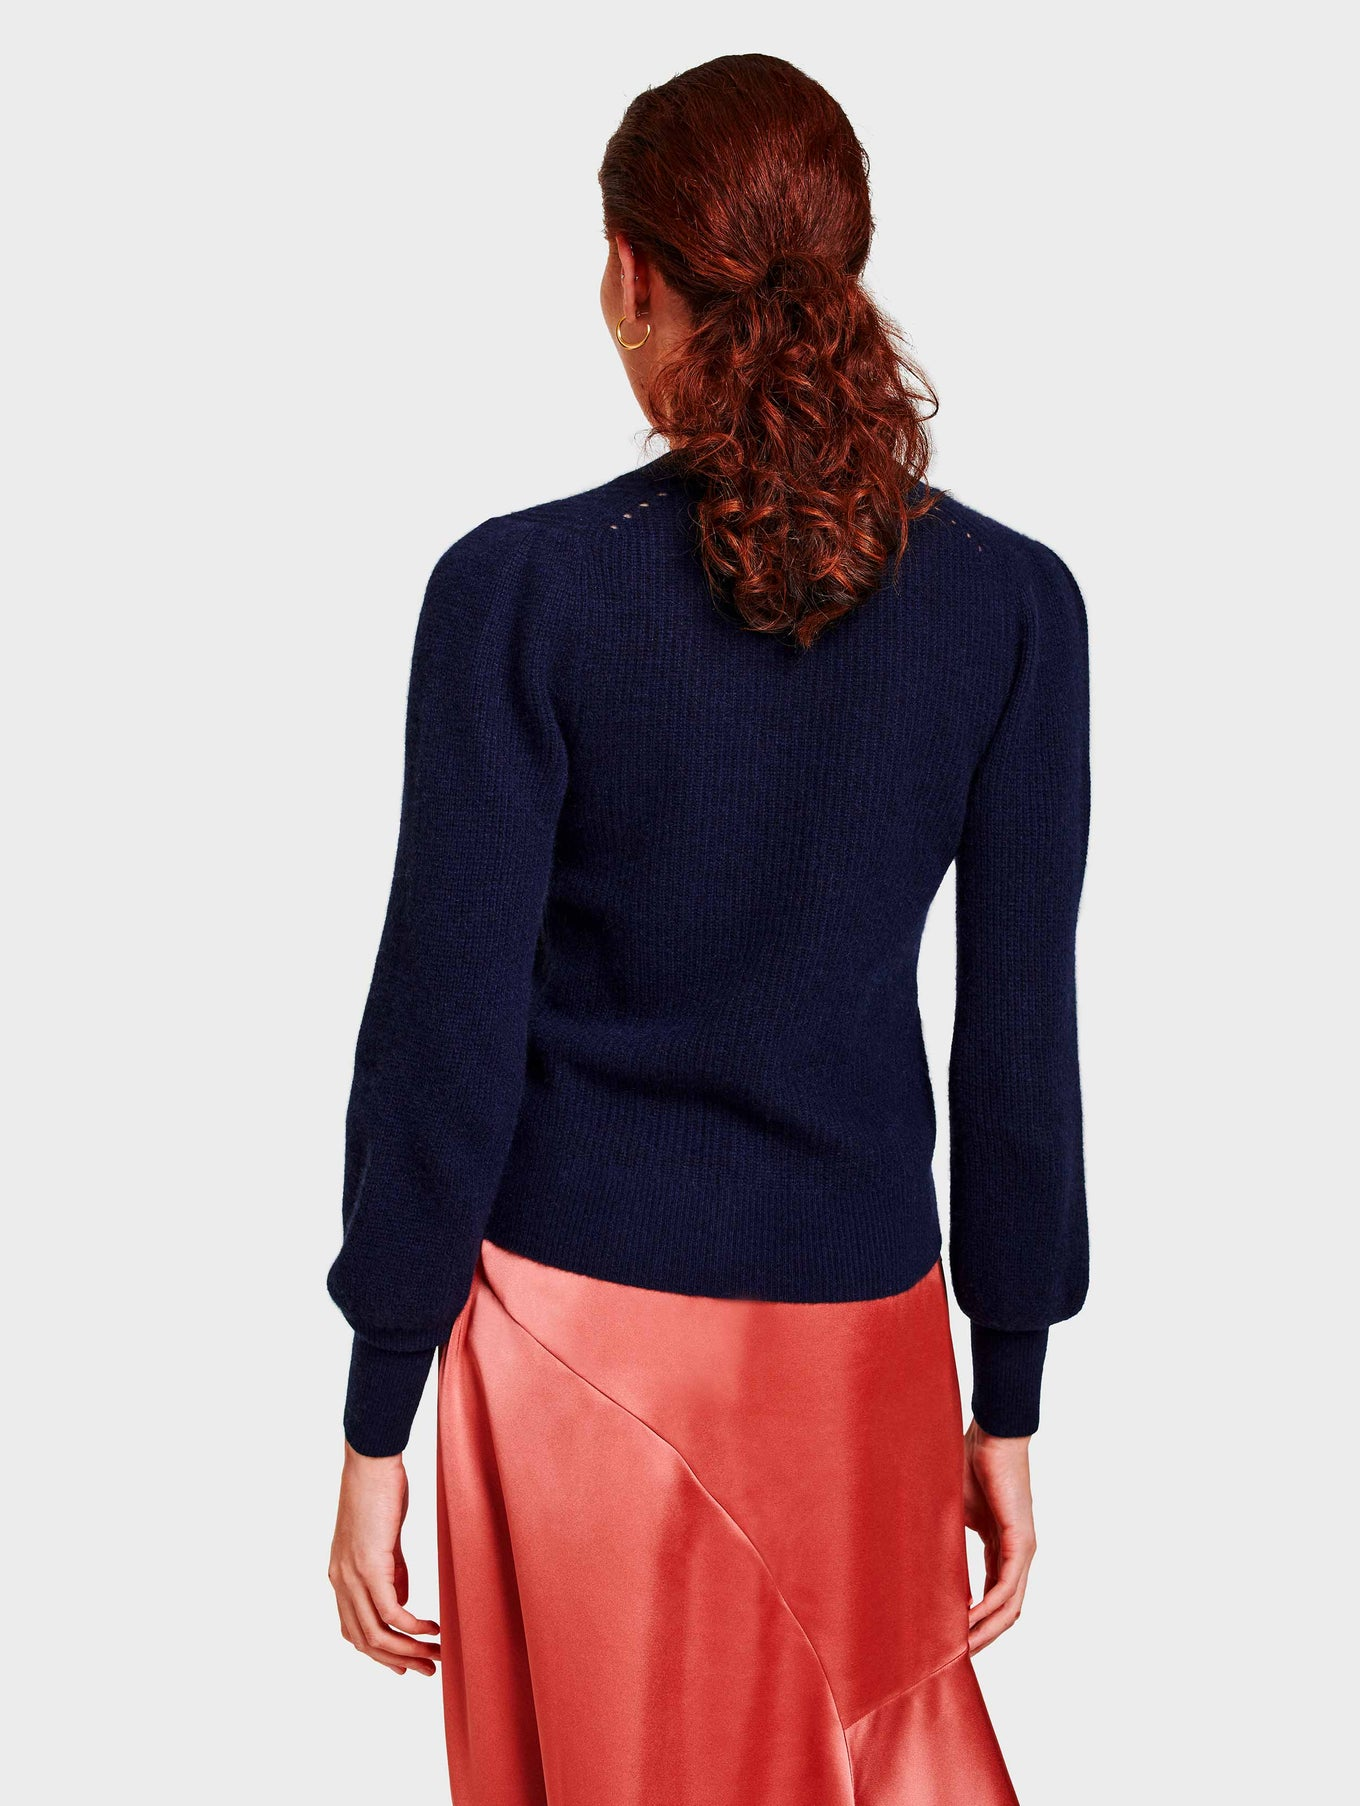 Cashmere Exaggerated Puff Sleeve Cardigan - Deep Navy - Image 3